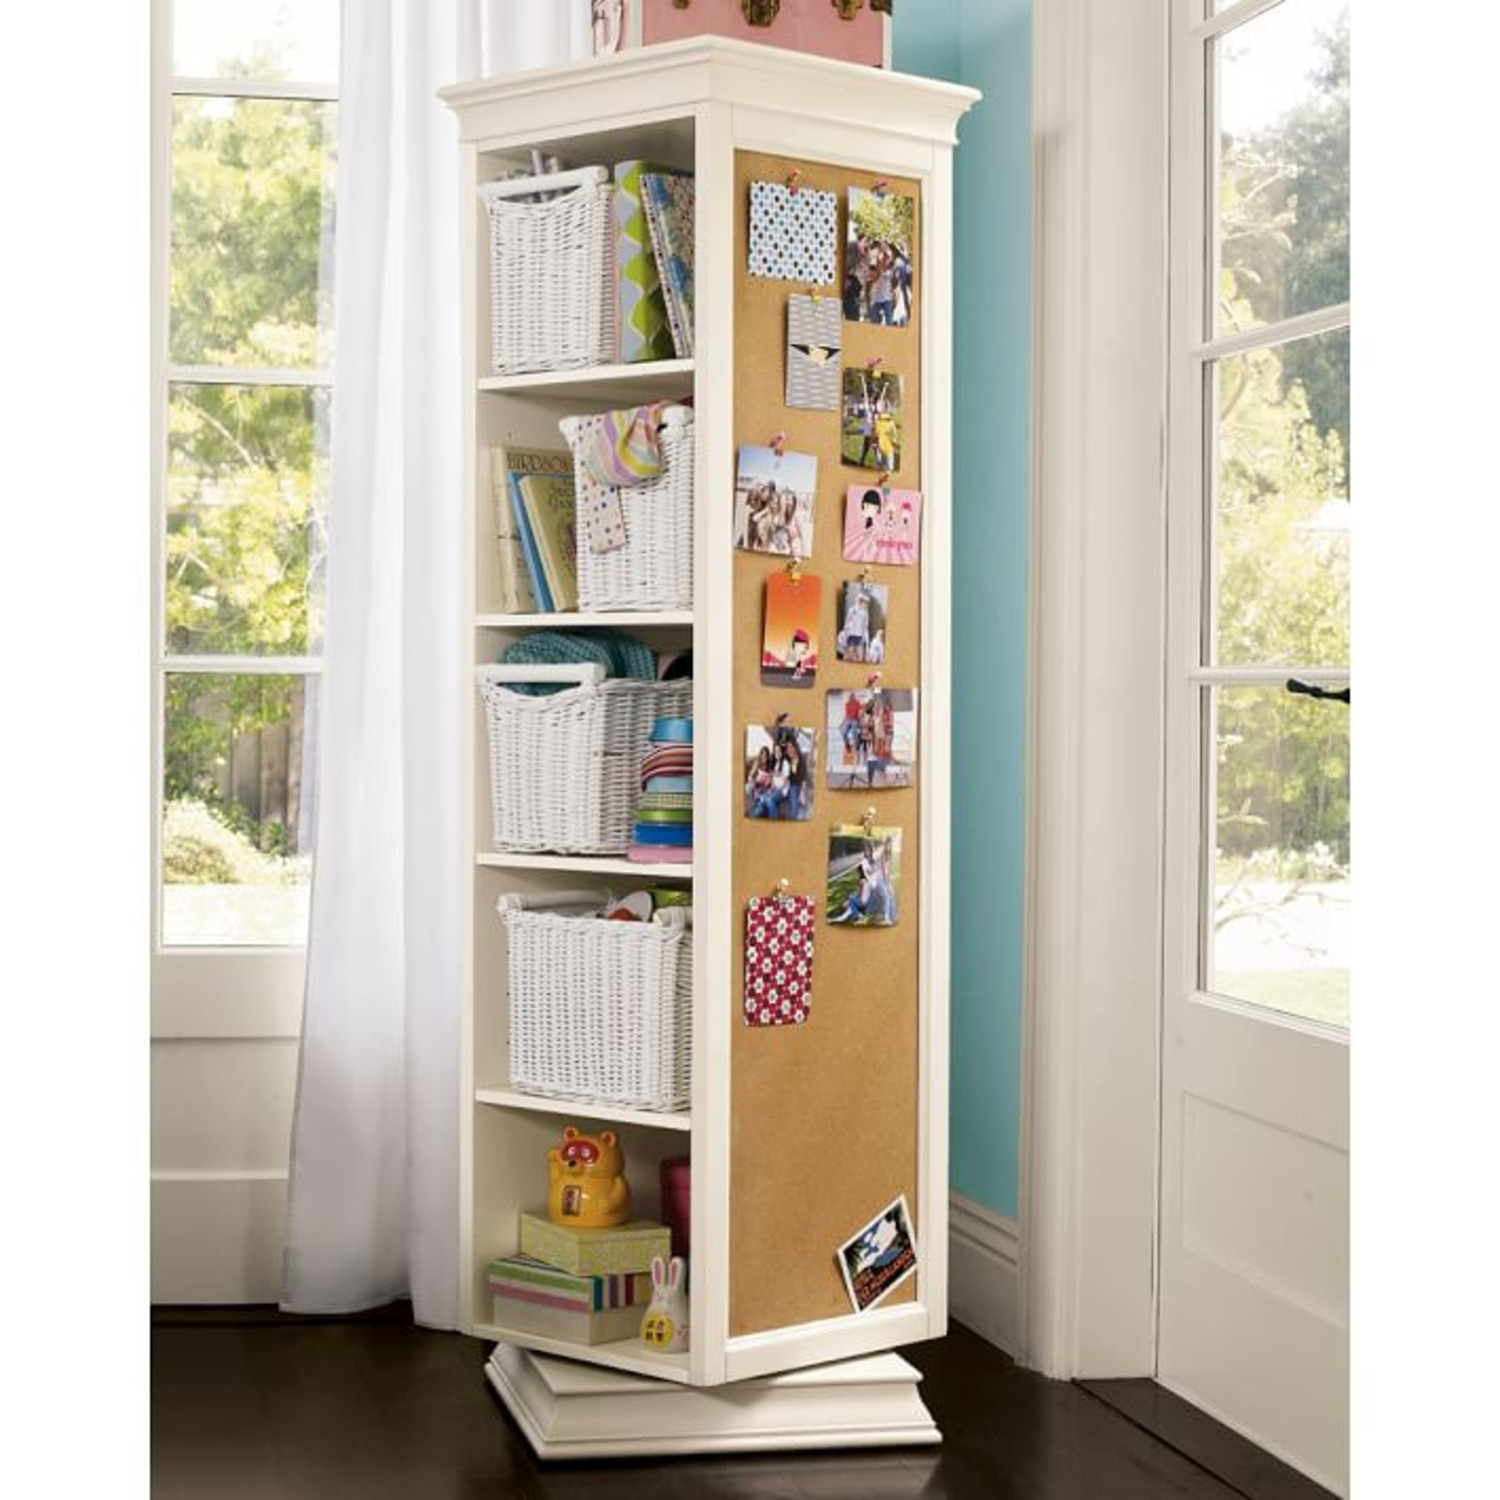 Pottery Barn Display-It Rotating Bookcase w/Mirror - image-8